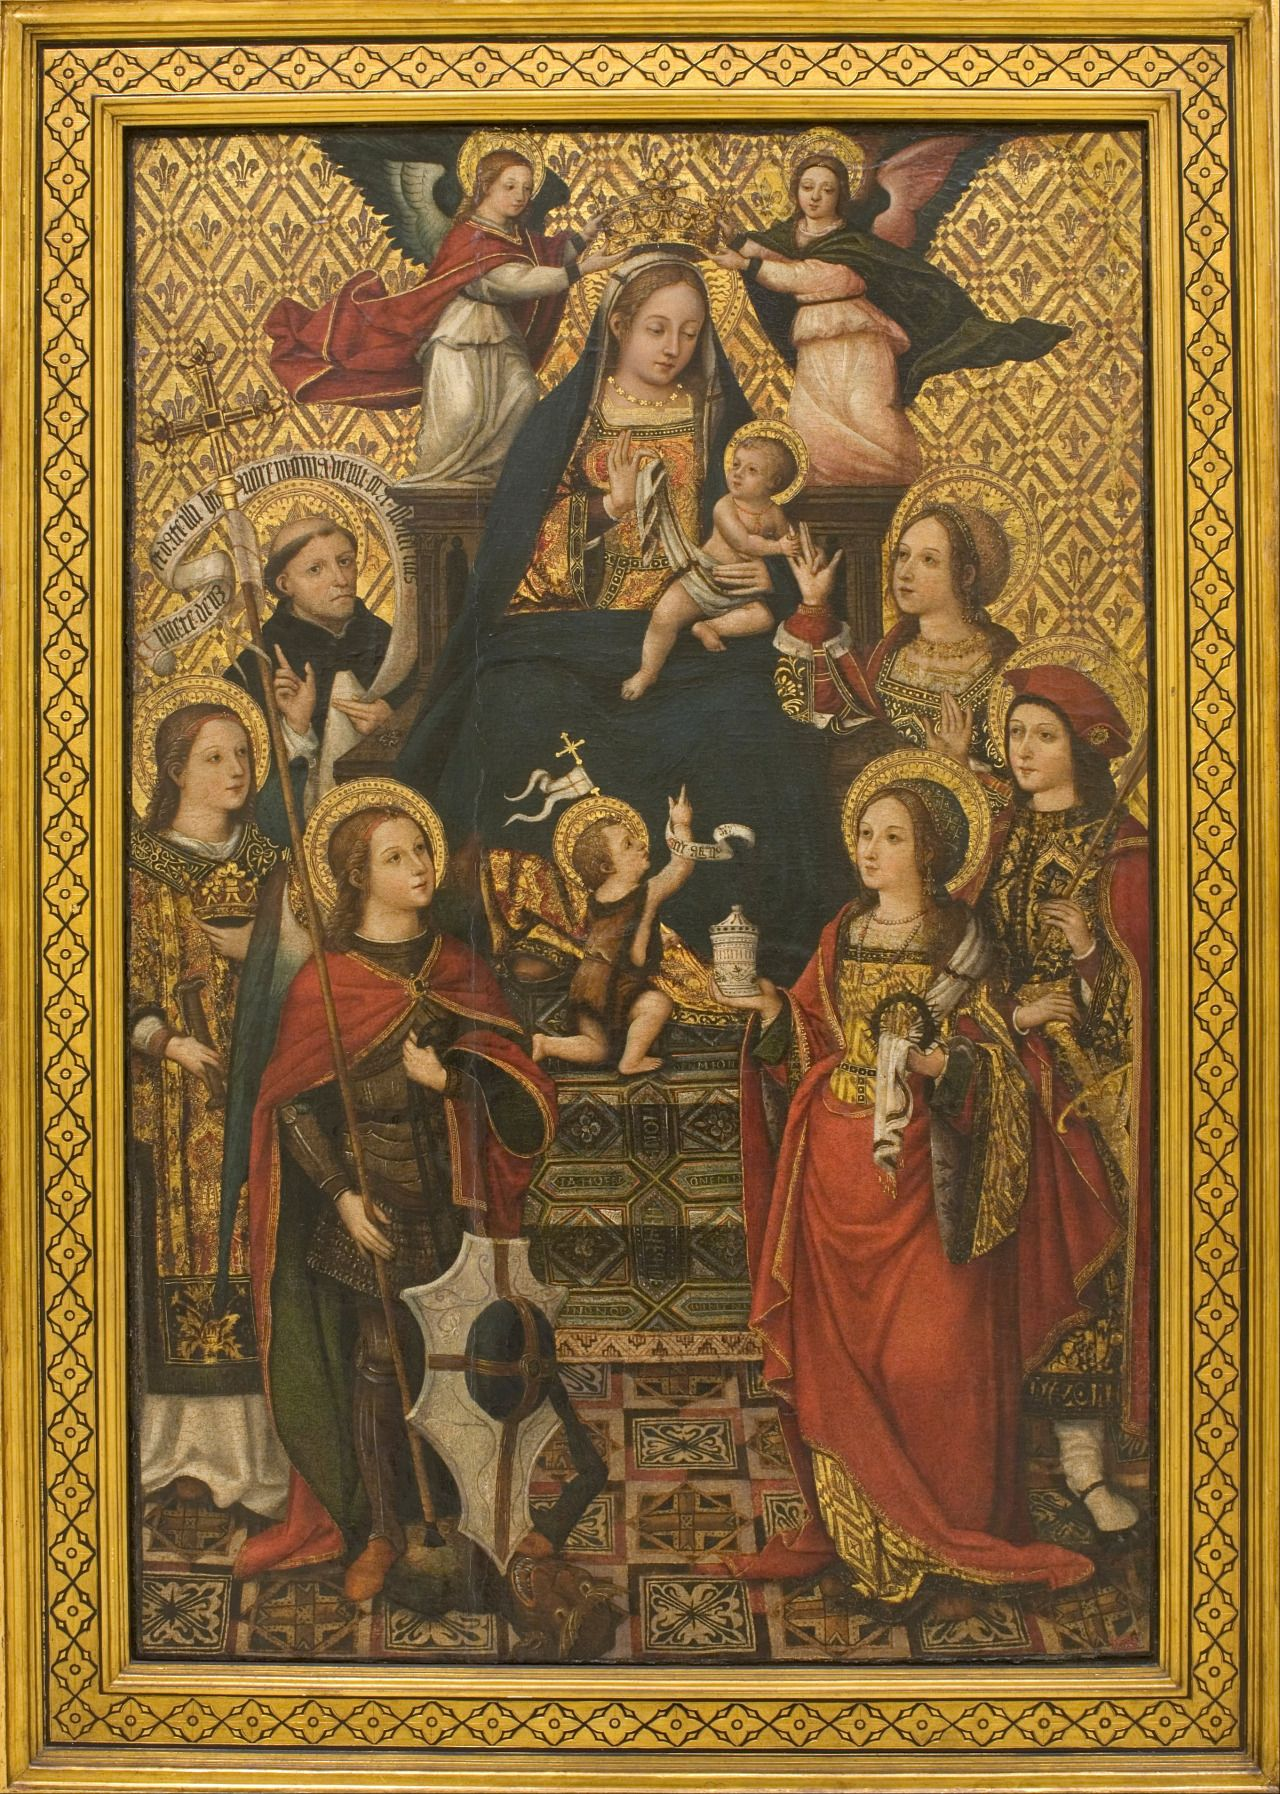 Arte Renacentista Del Siglo Xvi Vicente Masip 1475 1545 Virgin And Child With Saints And